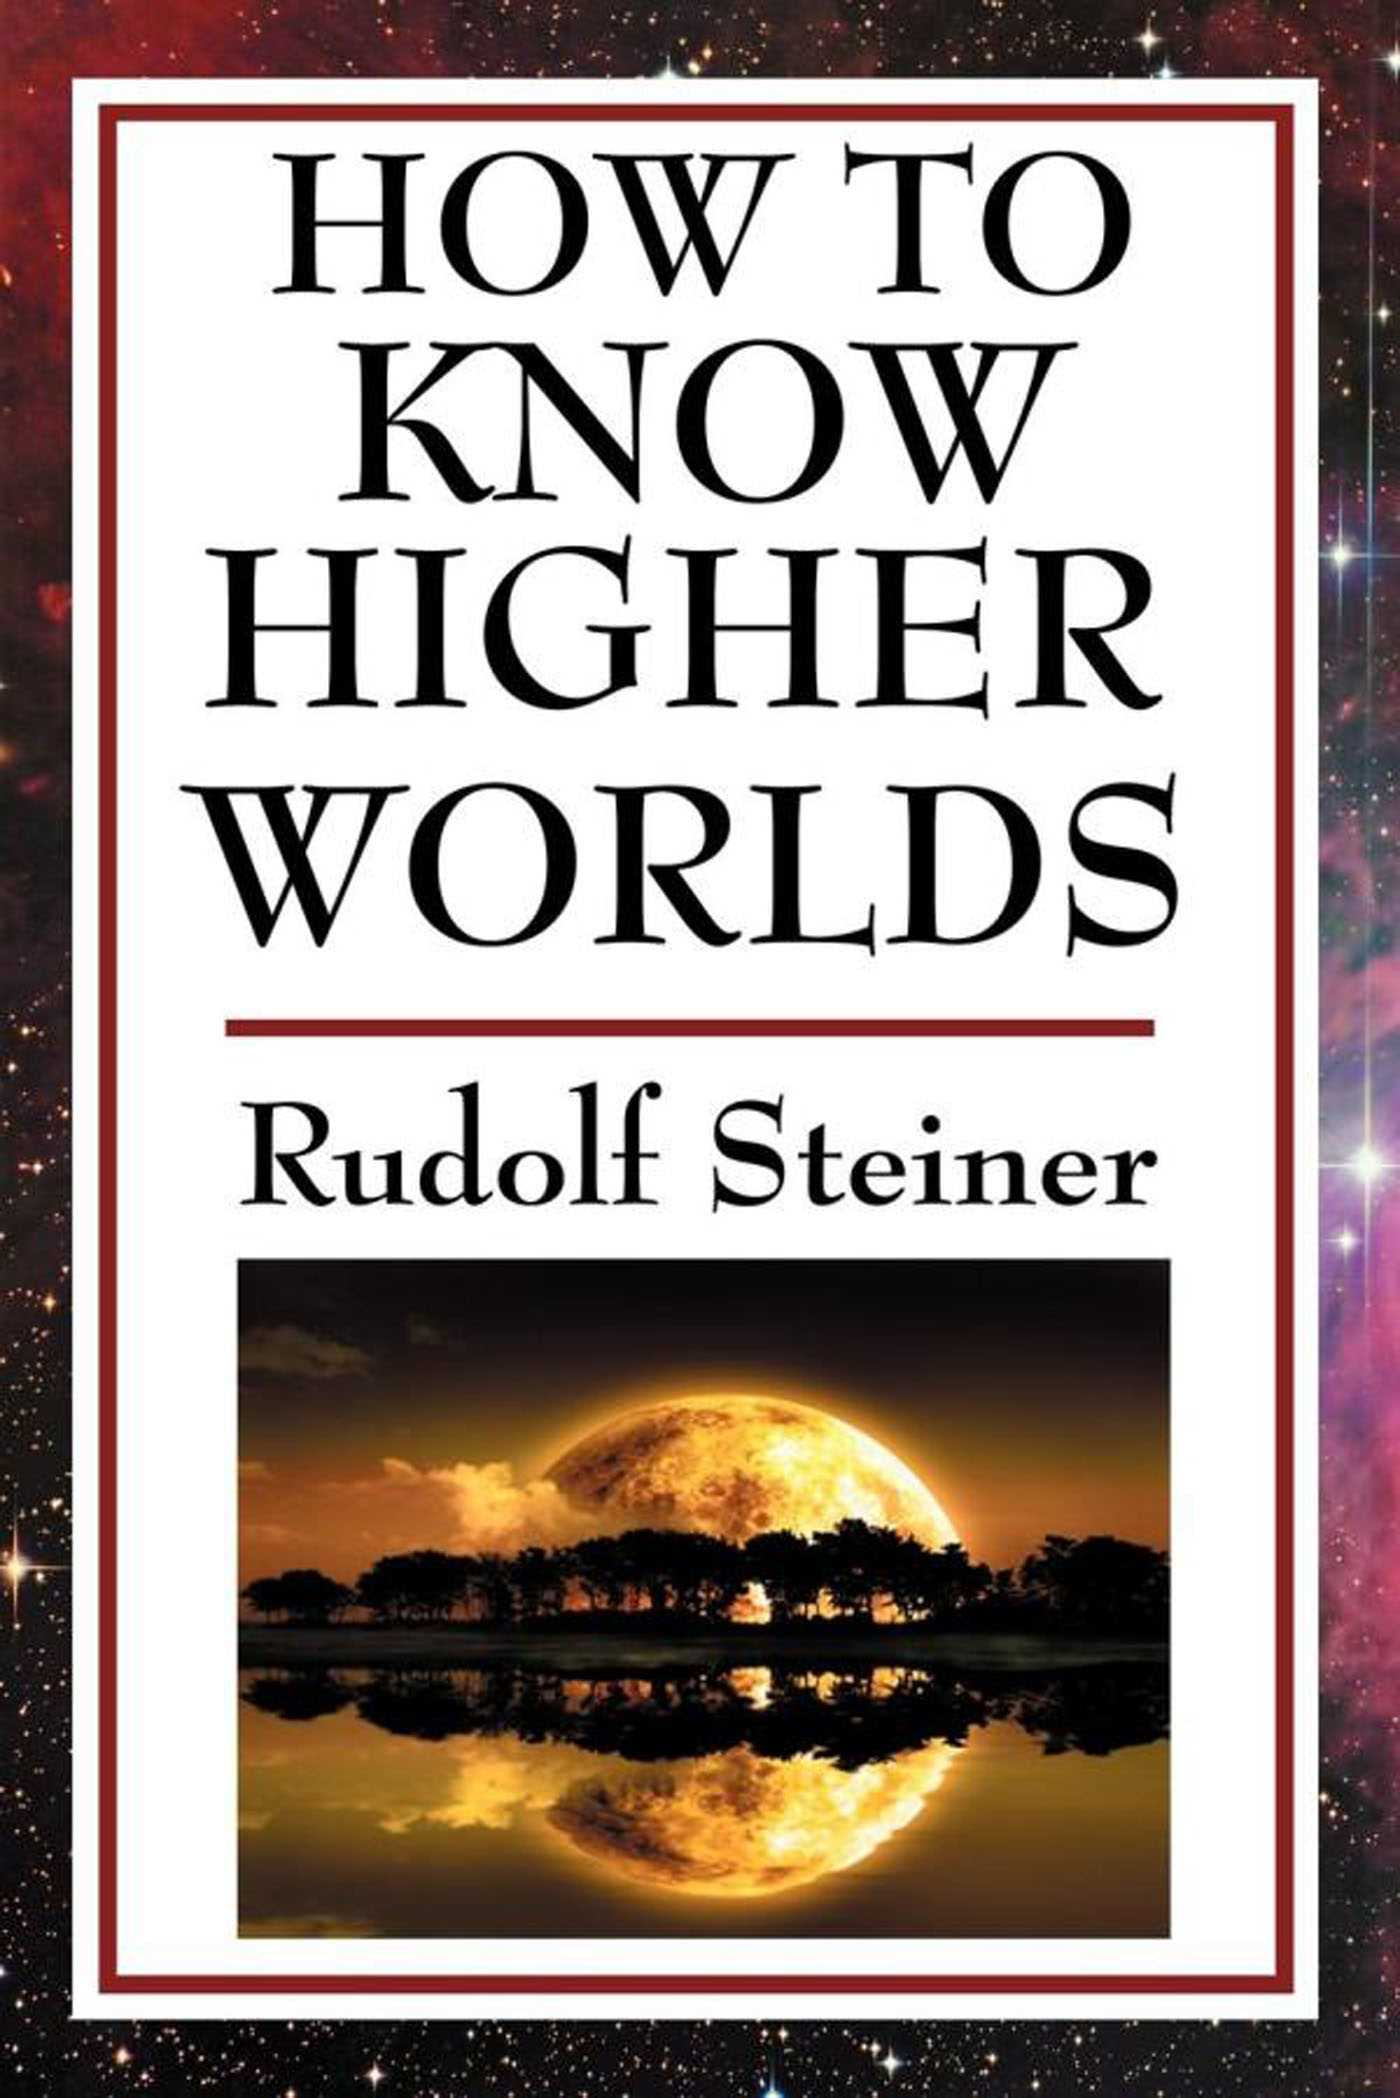 How to know higher worlds 9781625586933 hr